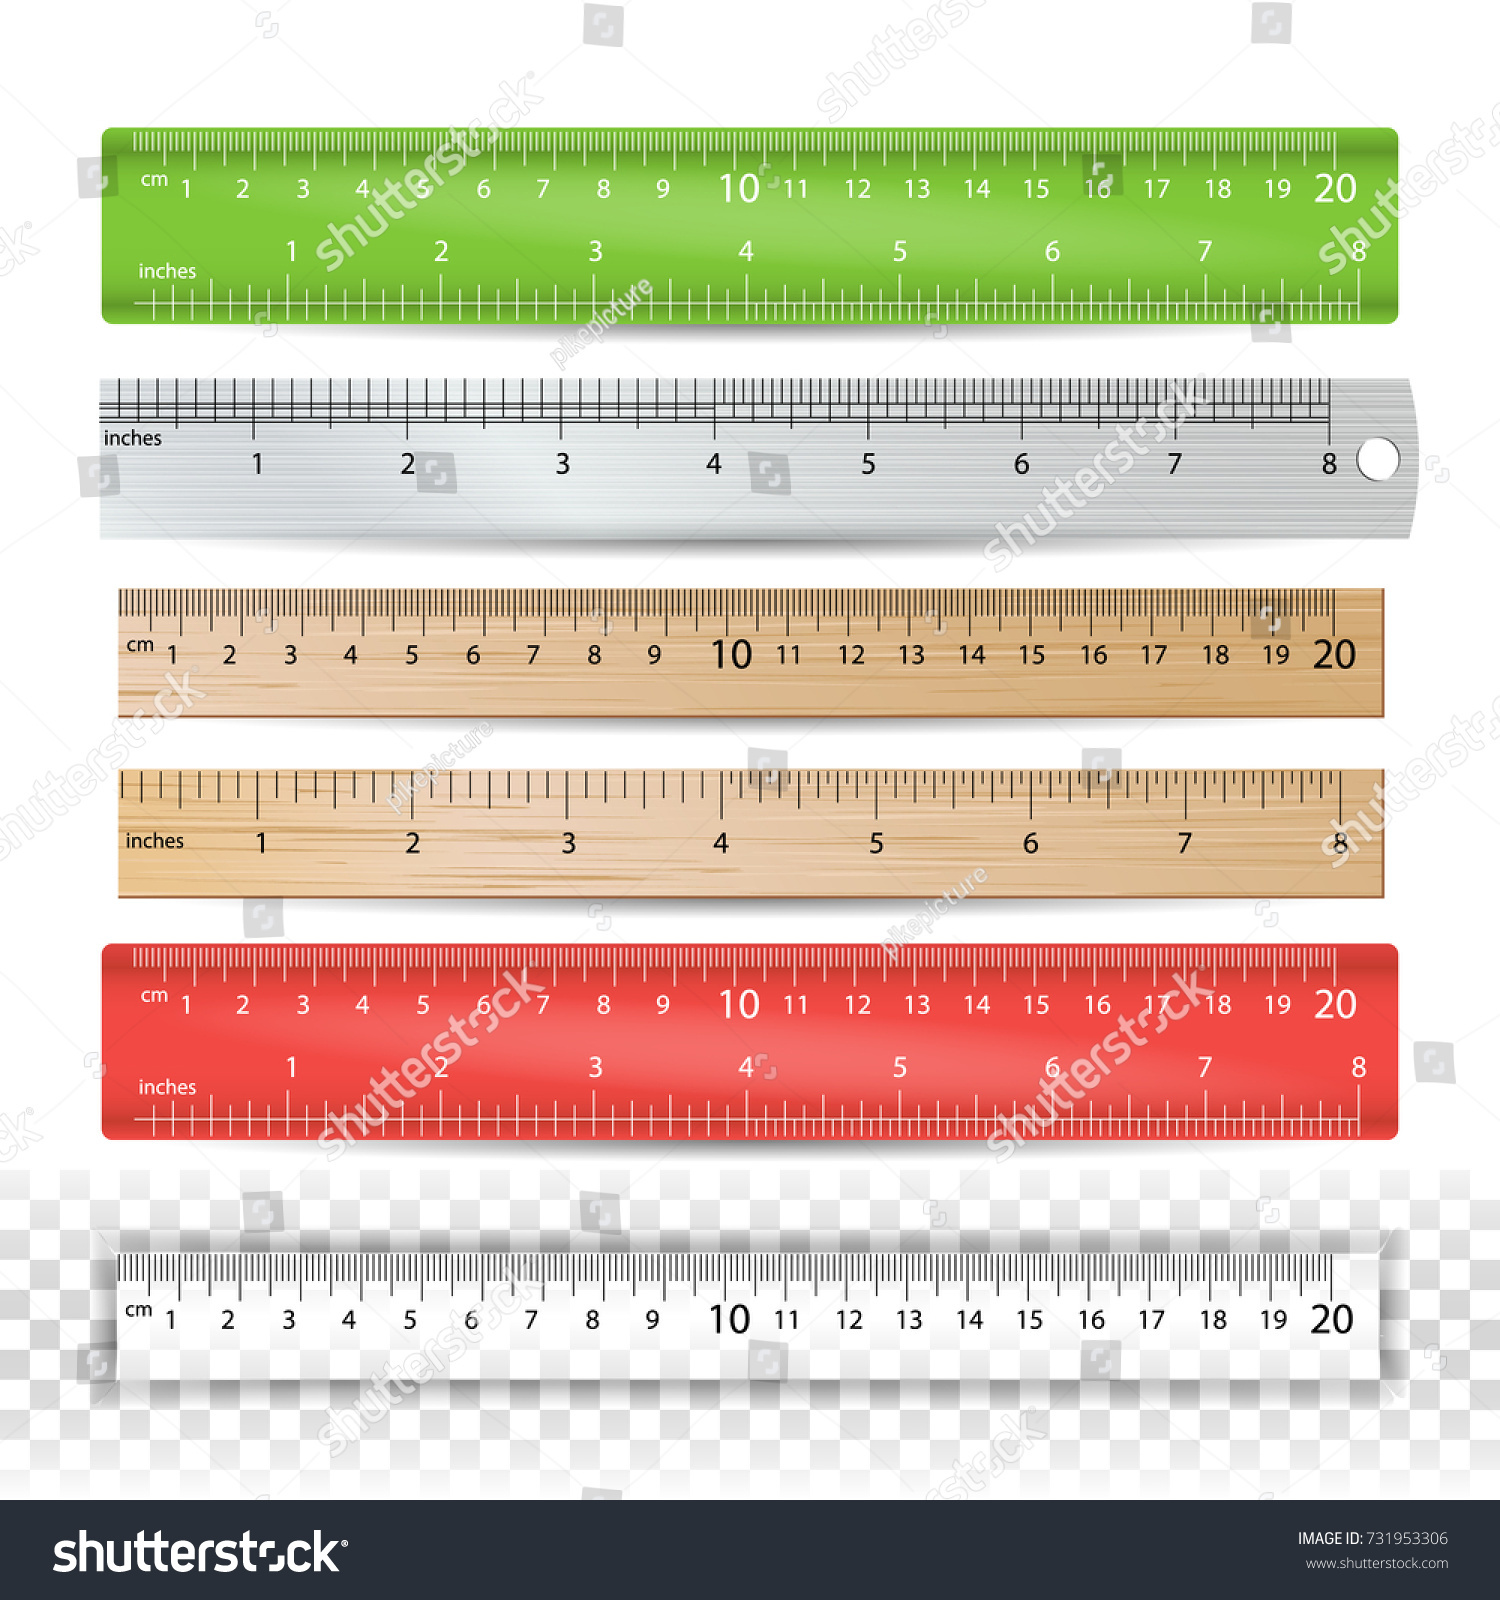 worksheet Measuring Centimeters school measuring ruler vector measure tool stock 731953306 millimeters centimeters and inches scale isolated